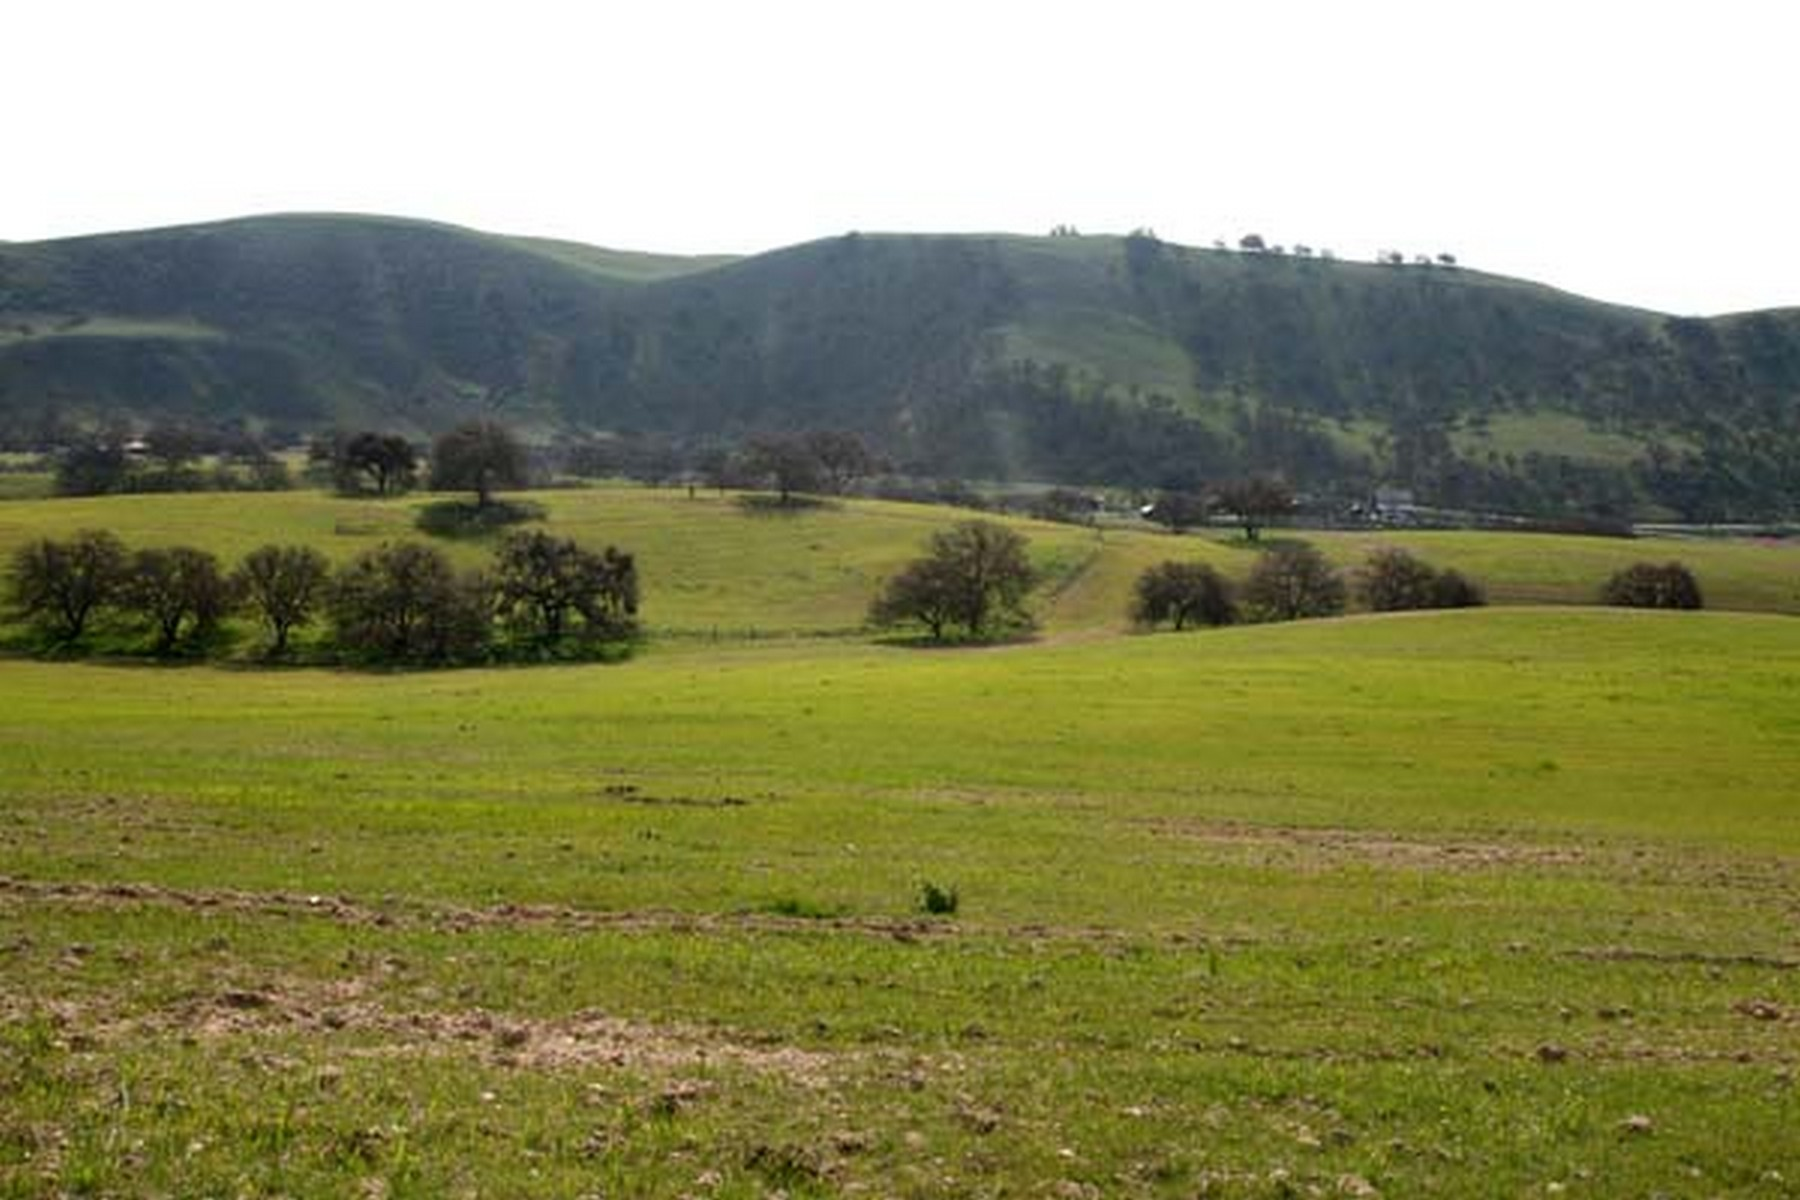 Land for Sale at 80 Acres Nickel Creek 0 Nickel Creek Rd San Miguel, California, 93451 United States